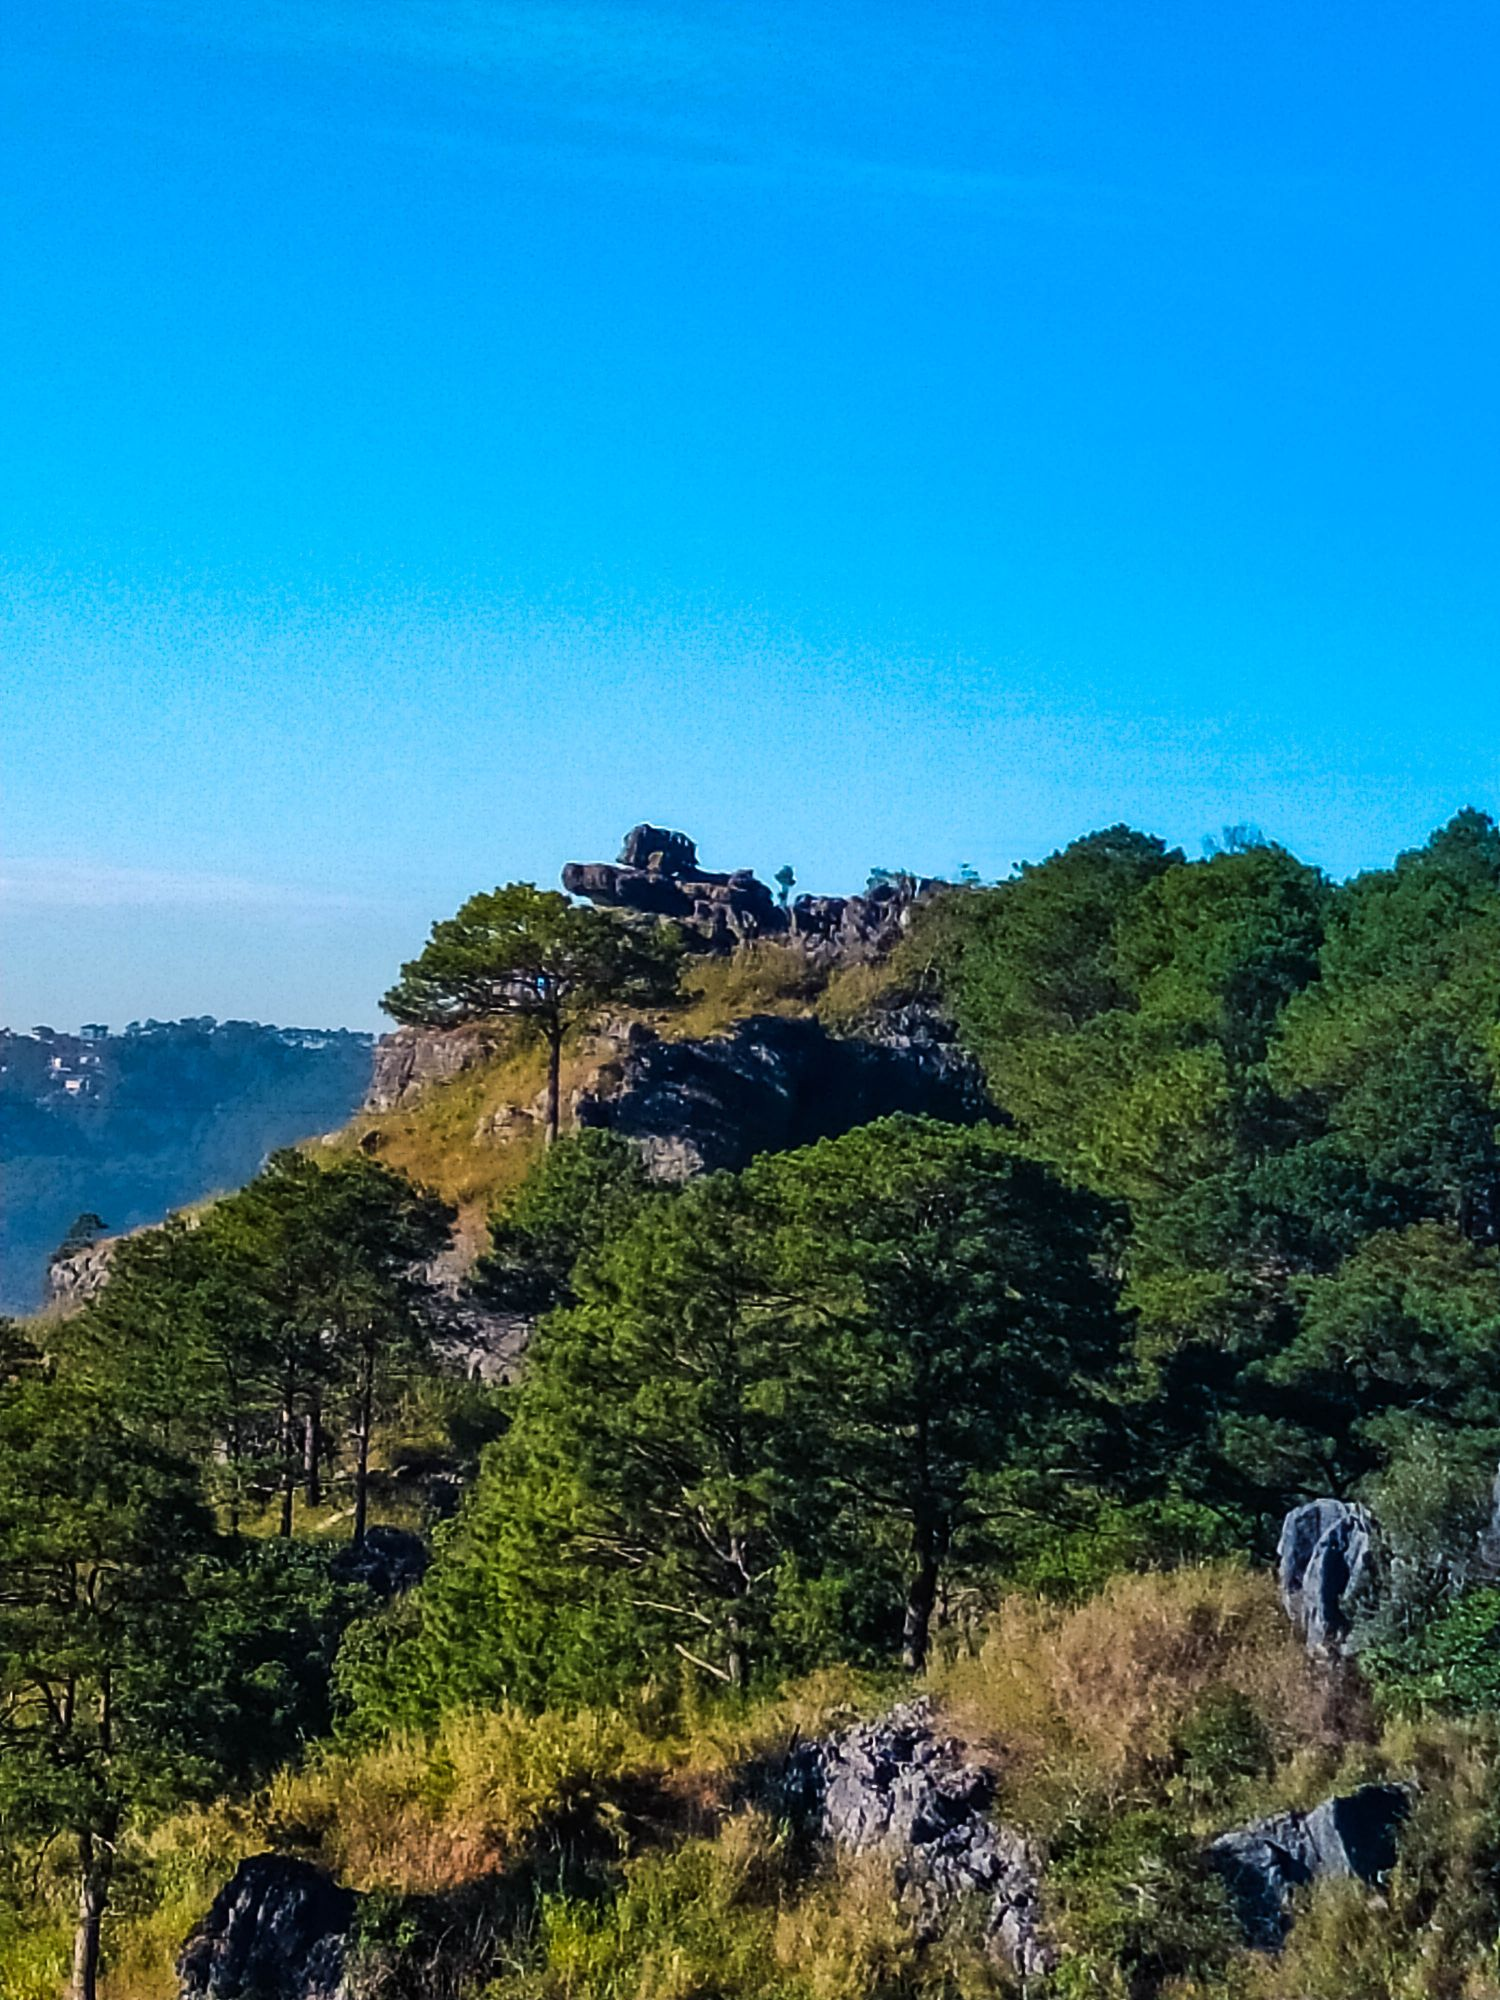 Mountain summit clad with pine trees, grass, and limestone rocks beneath a clear blue sky